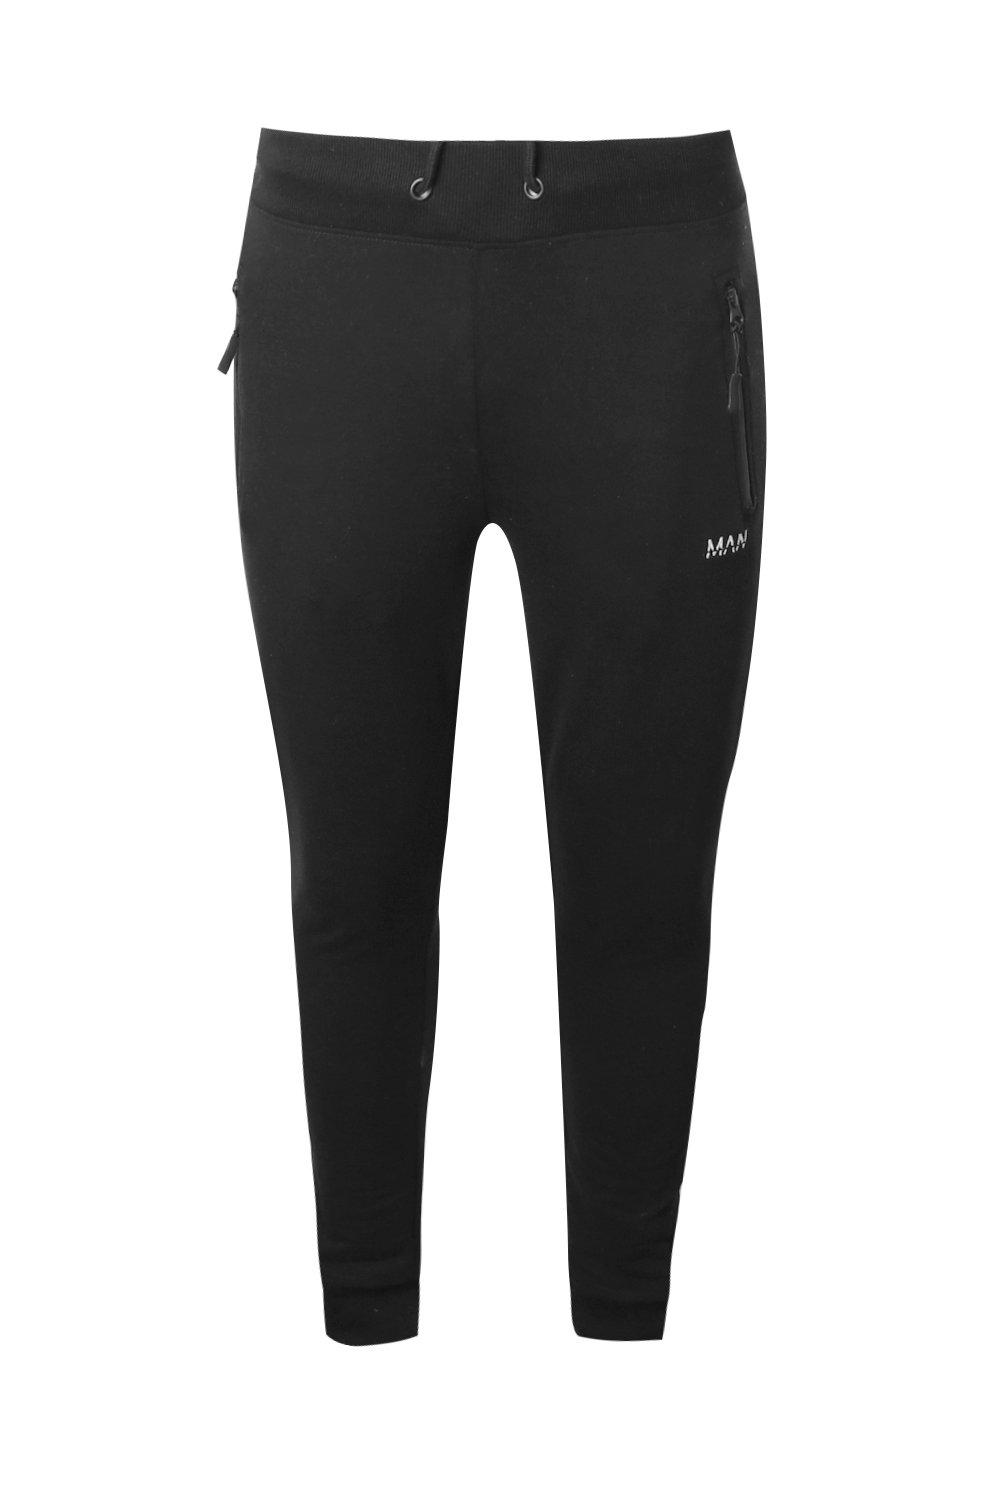 boohooMAN black Skinny Fit Active Gym Joggers With Zip Pockets